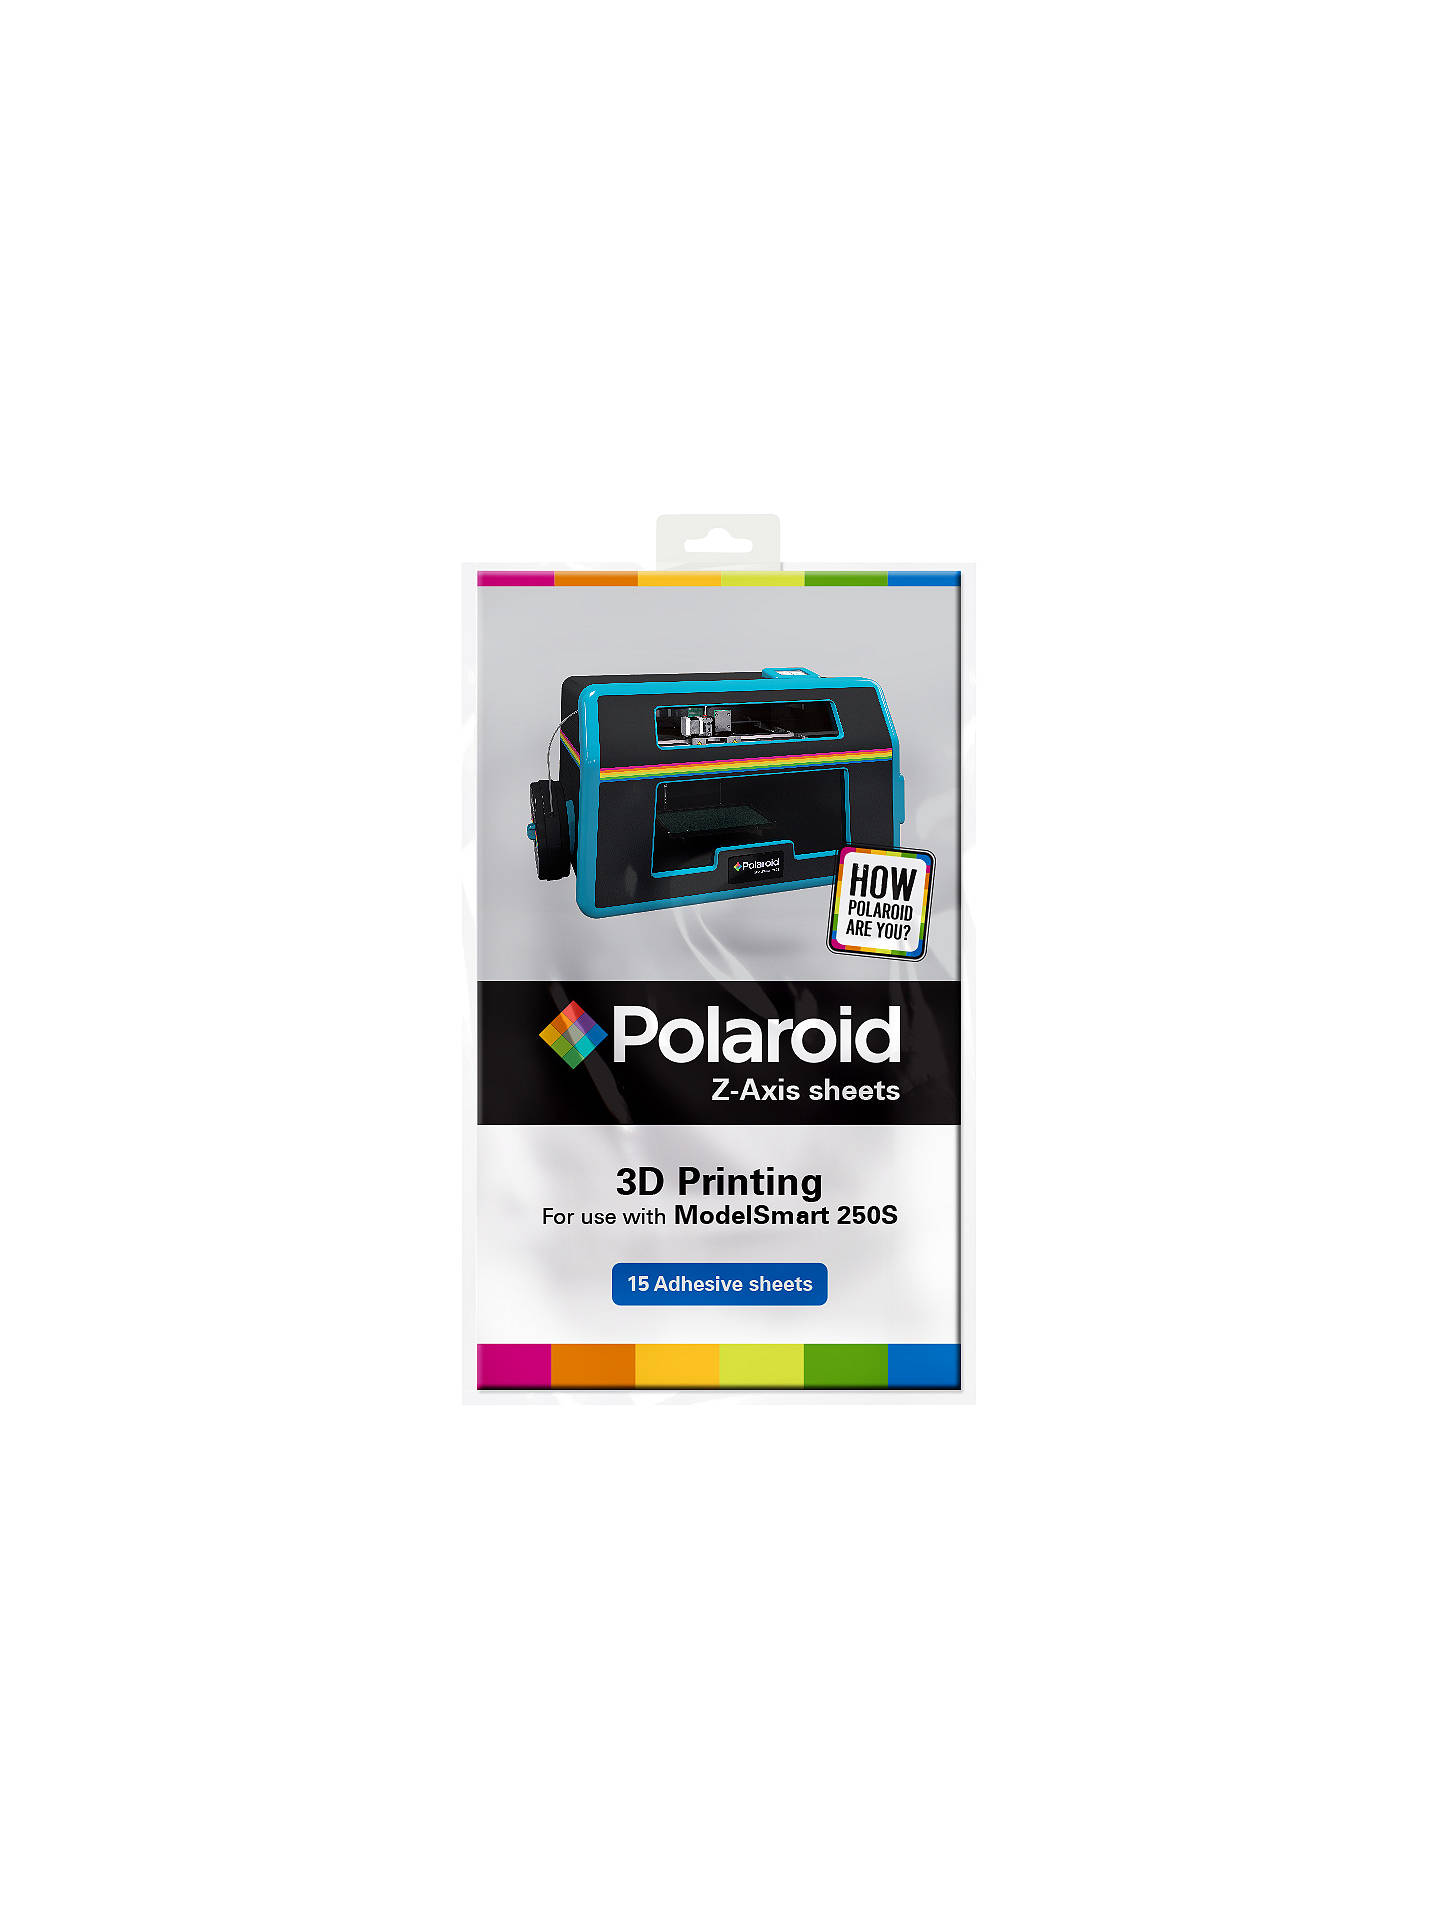 Supply Polaroid Pl-9002-00 3d Printer Accessory 15 X Z-axis Sheets For Polaroid Computers/tablets & Networking 3d Printers & Supplies